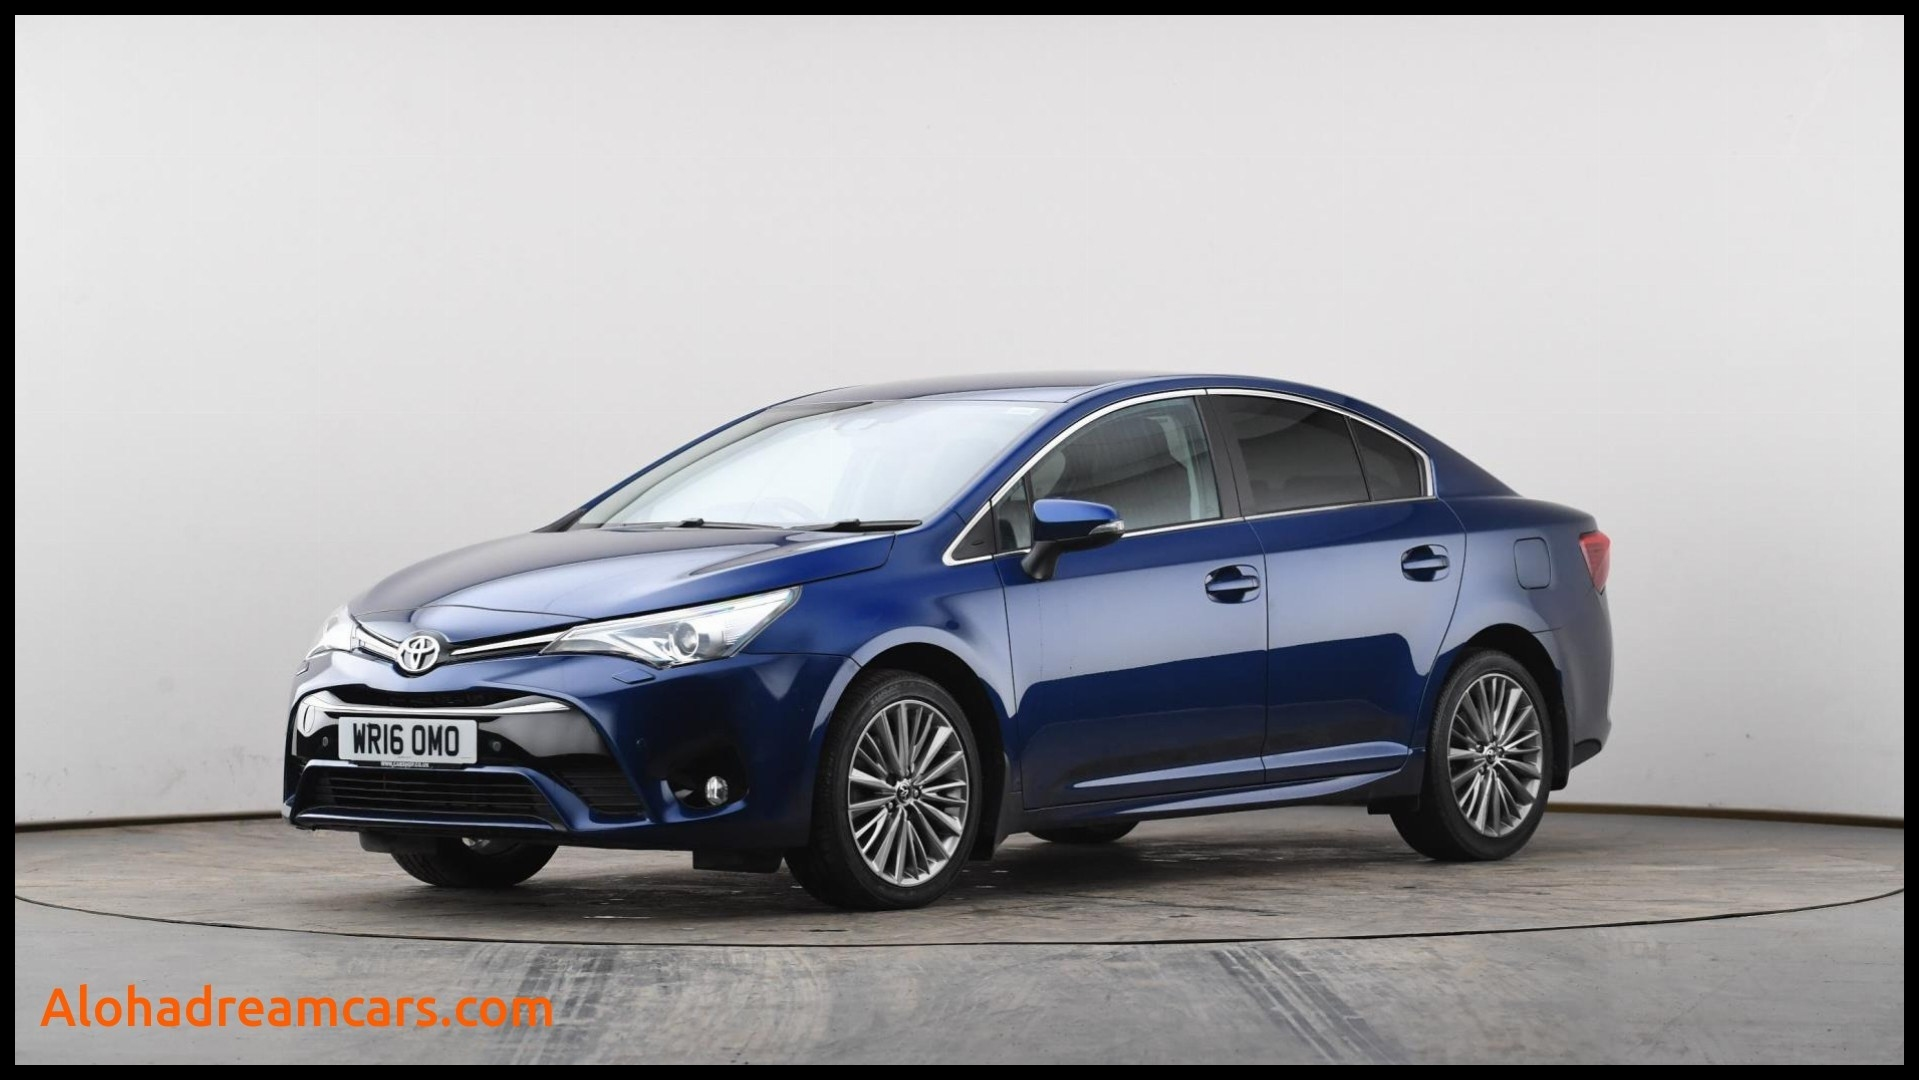 2019 Camry 2019 Camry Hybrid Redesign and Price toyota Insurance Number Uk